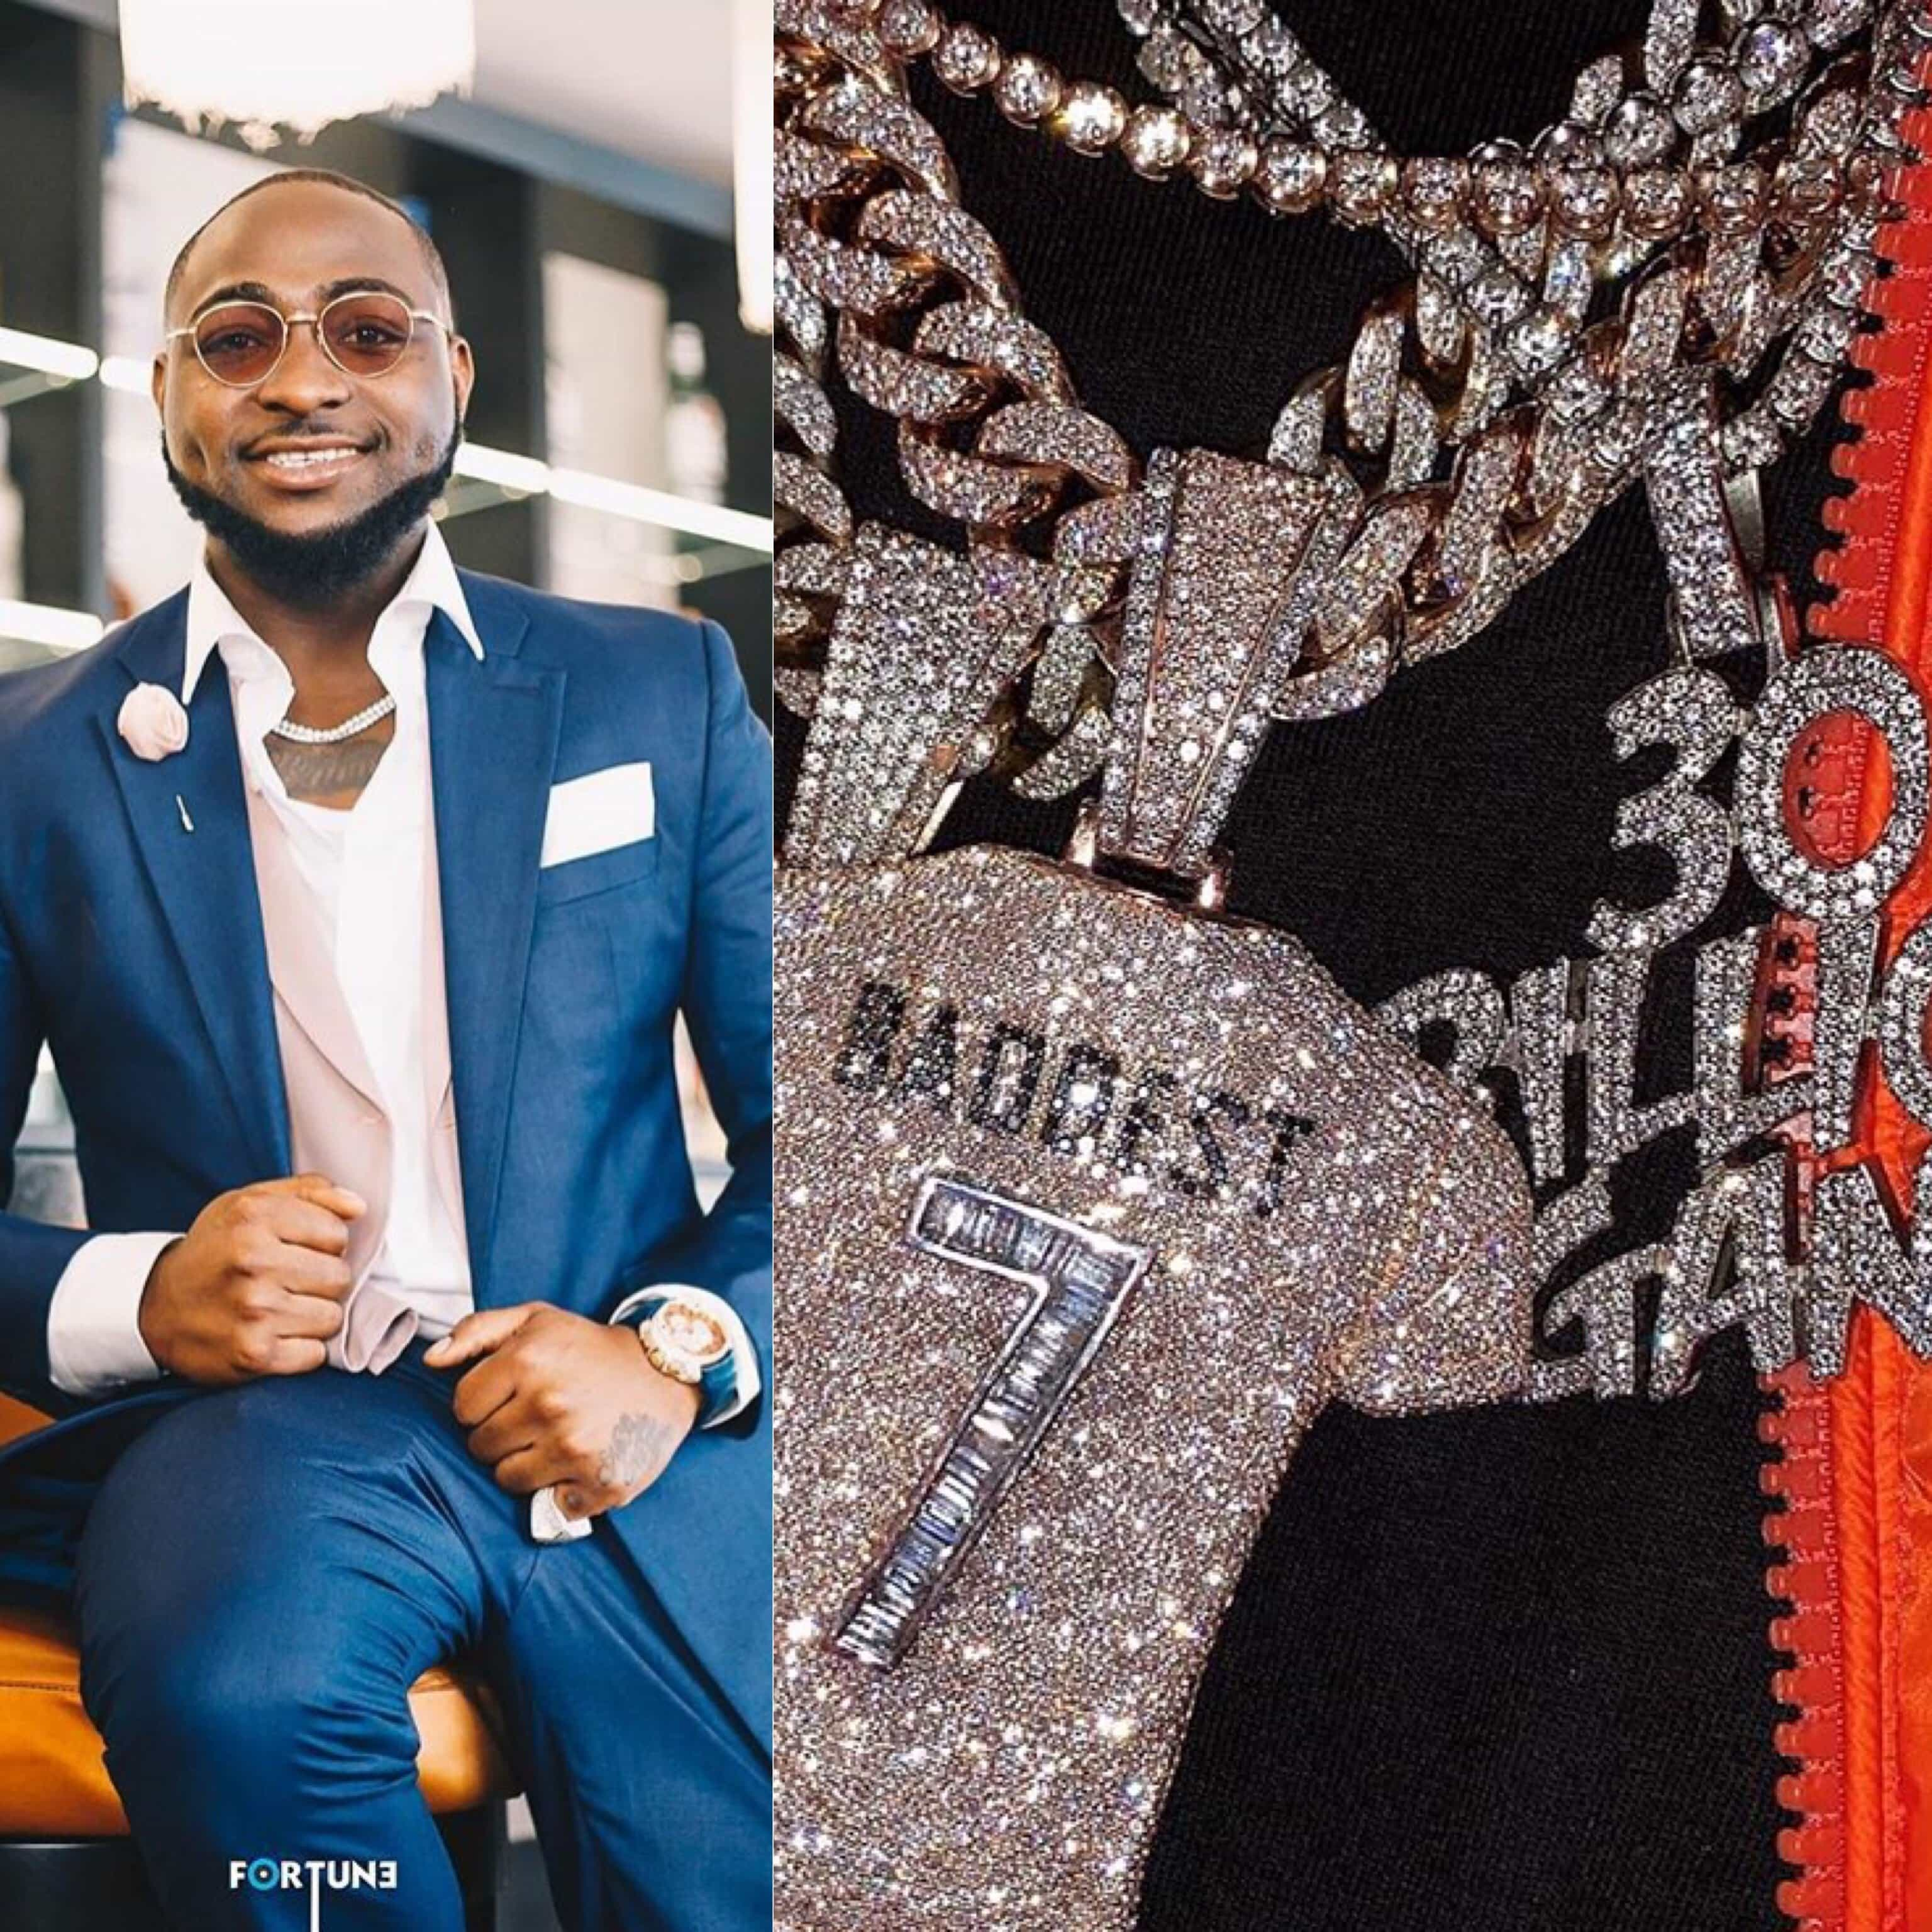 Photo of Davido flaunts diamond neckpieces and $300,000 Richard Mille watch as early birthday gifts